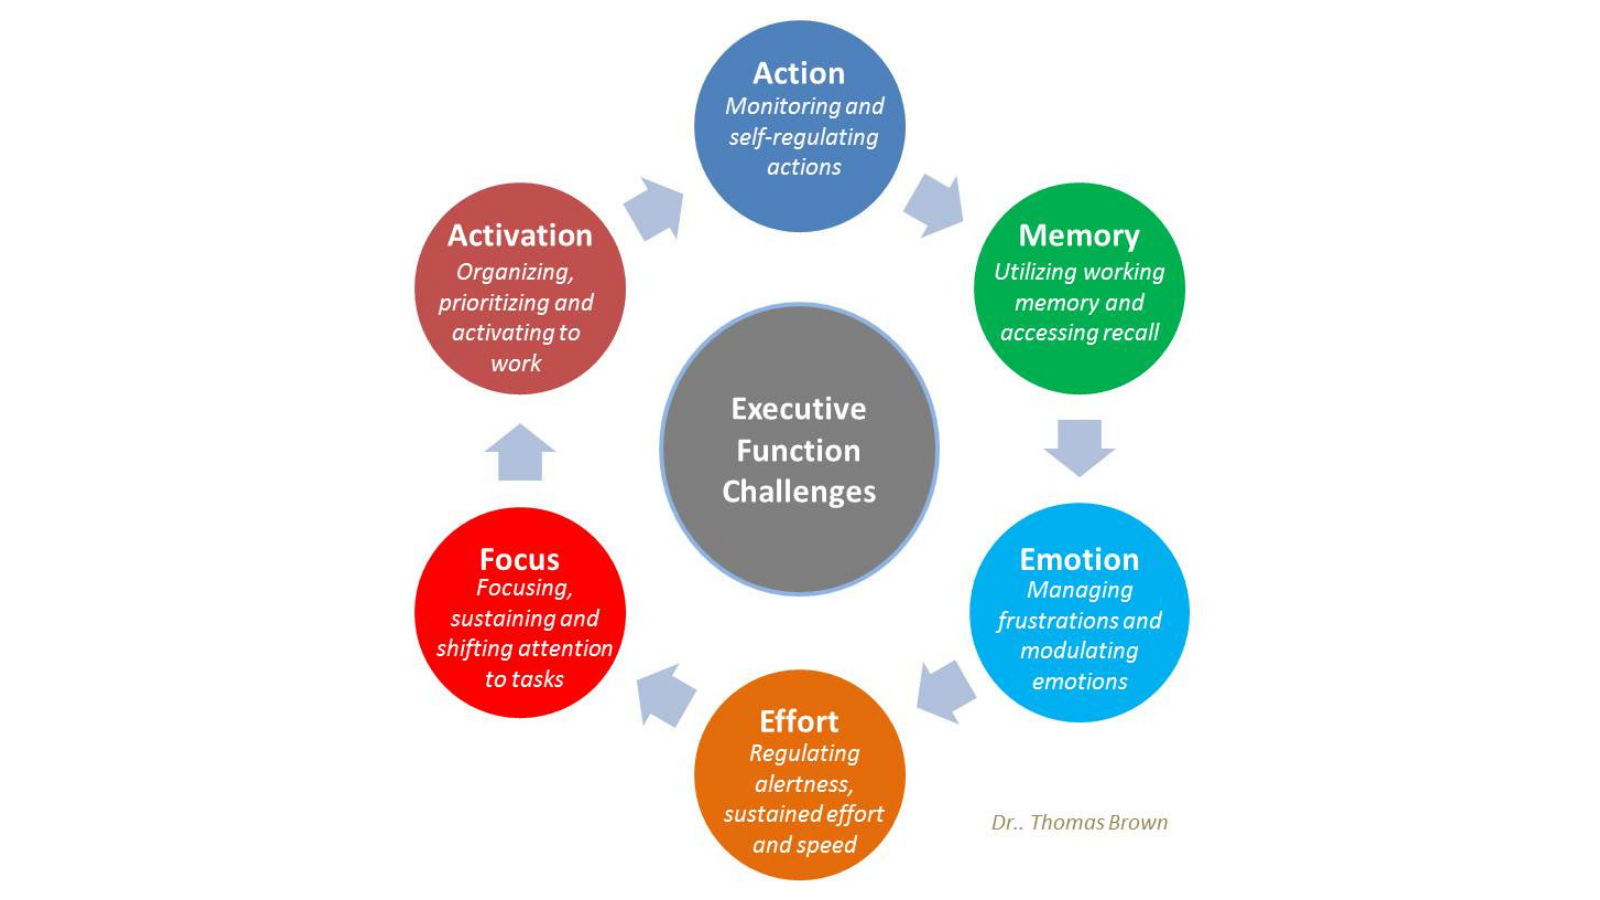 Executive Function Featured Image